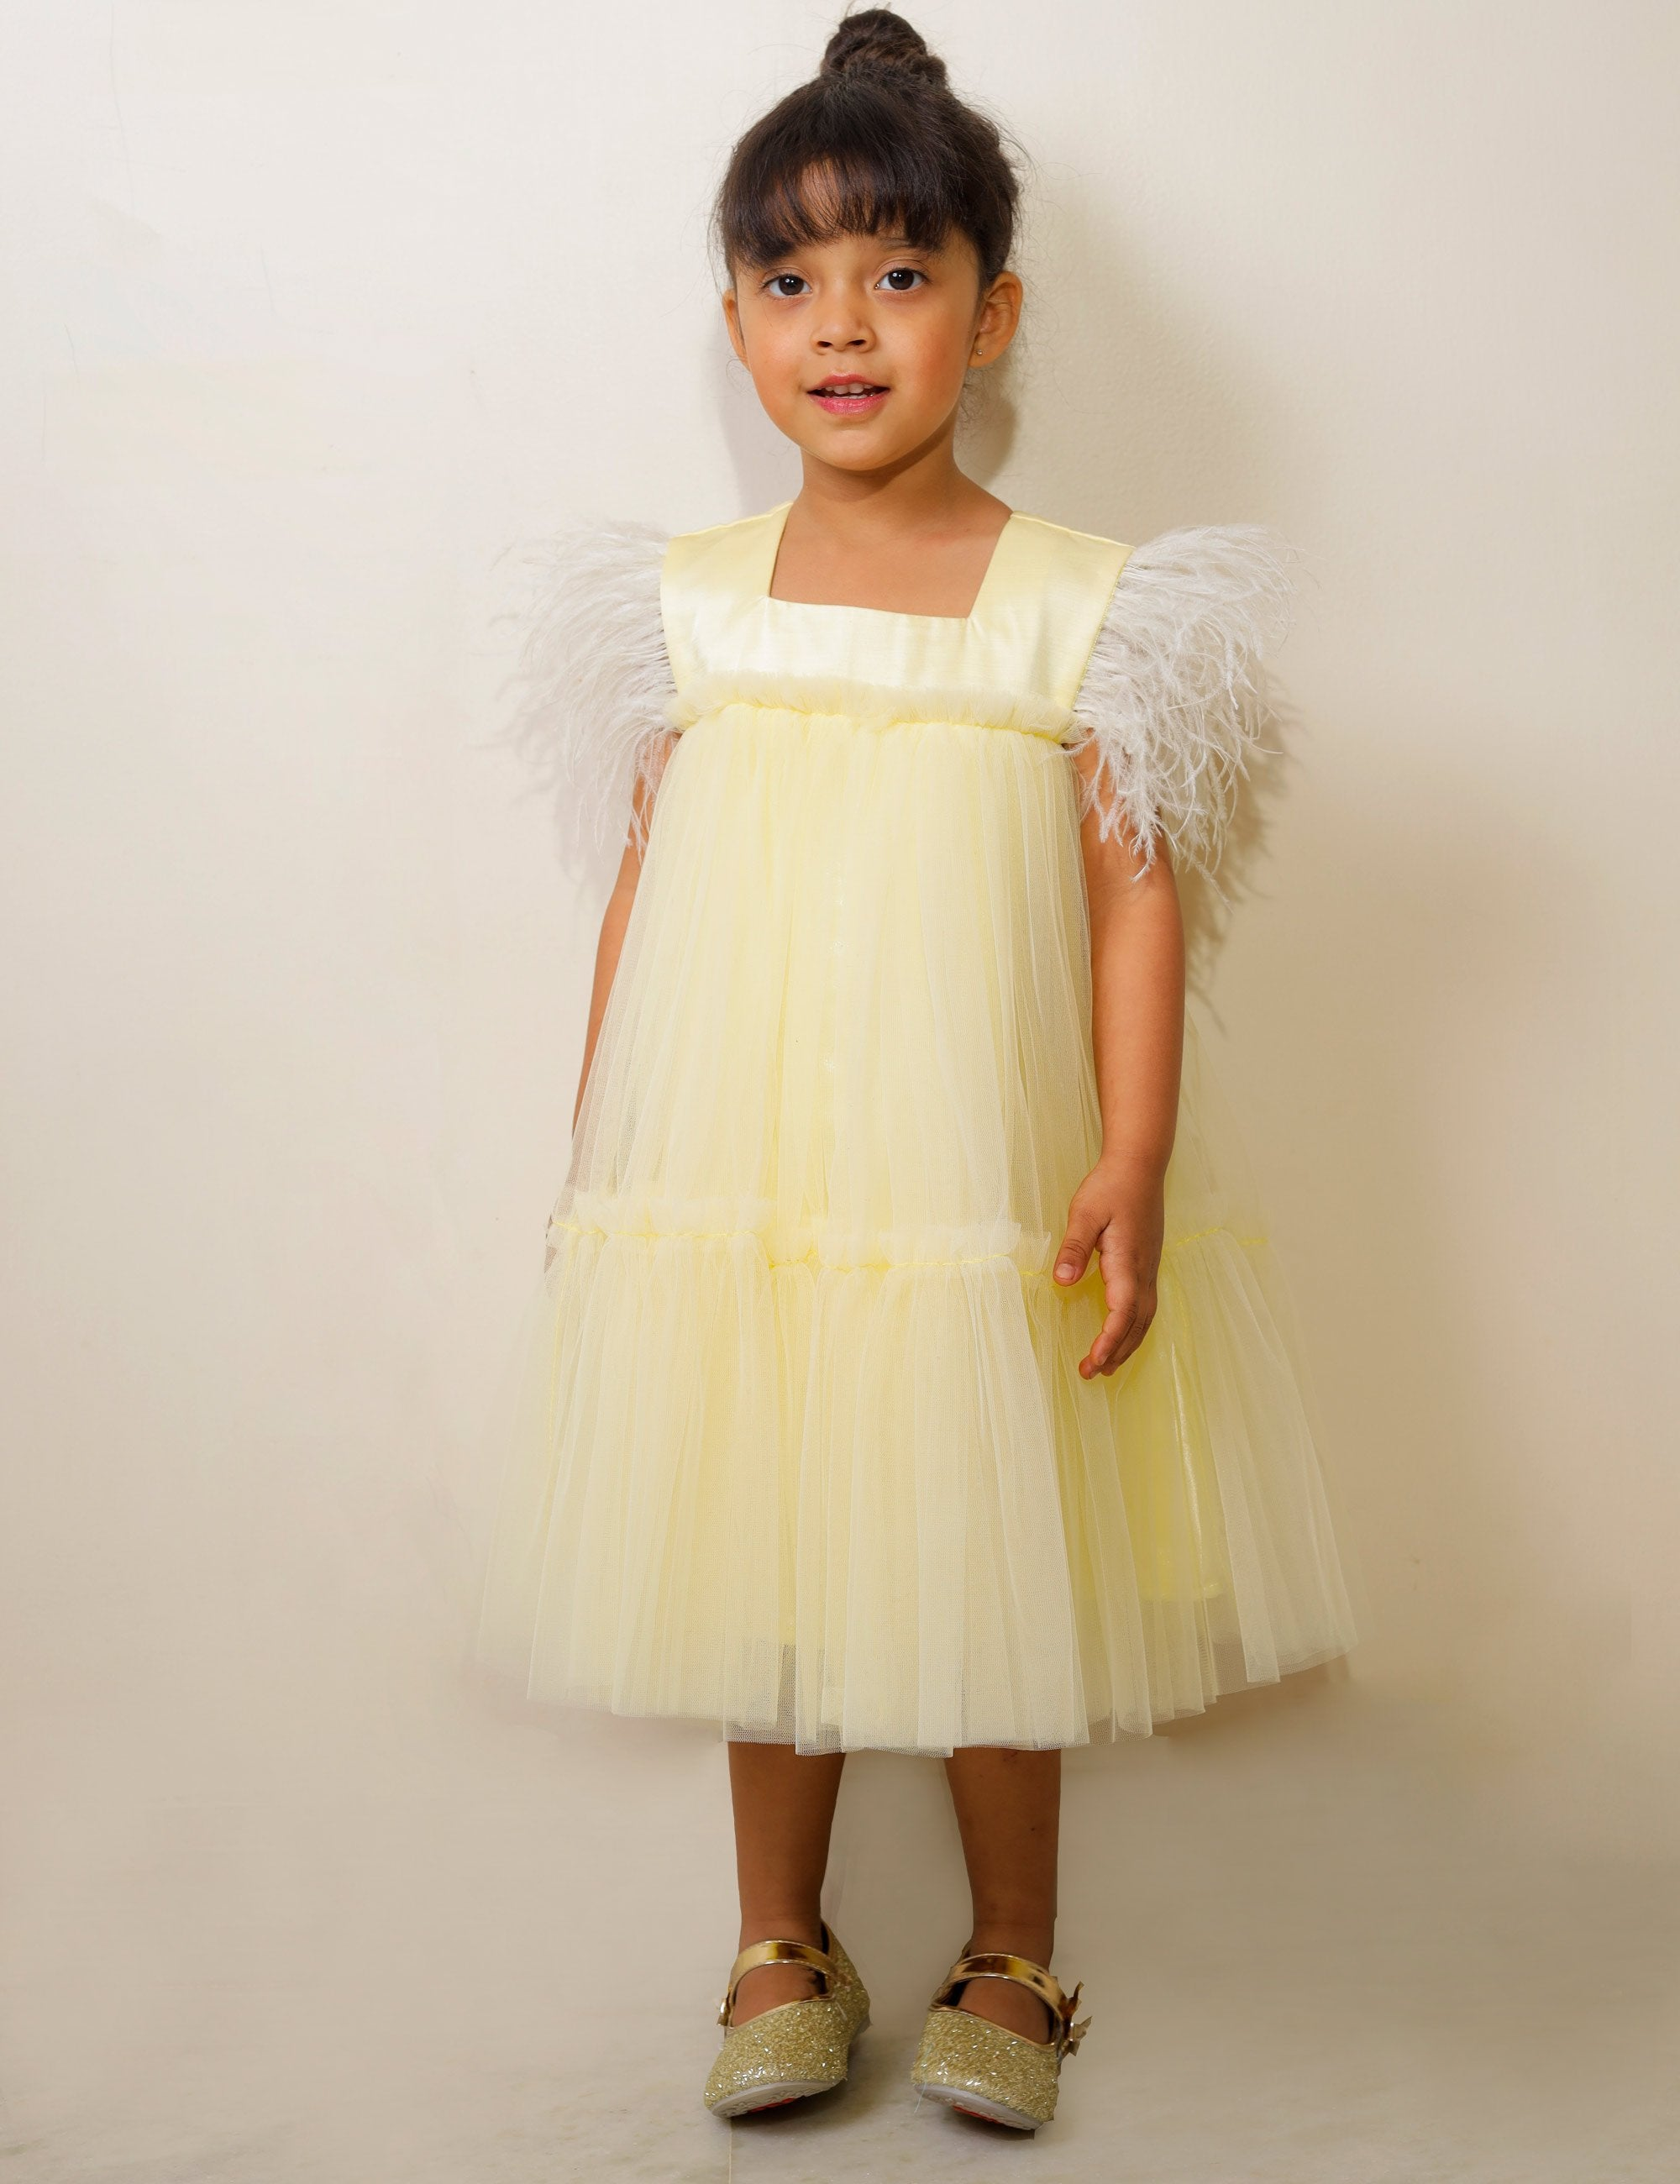 Lemon Yellow Dress with Ruffle and Feathers